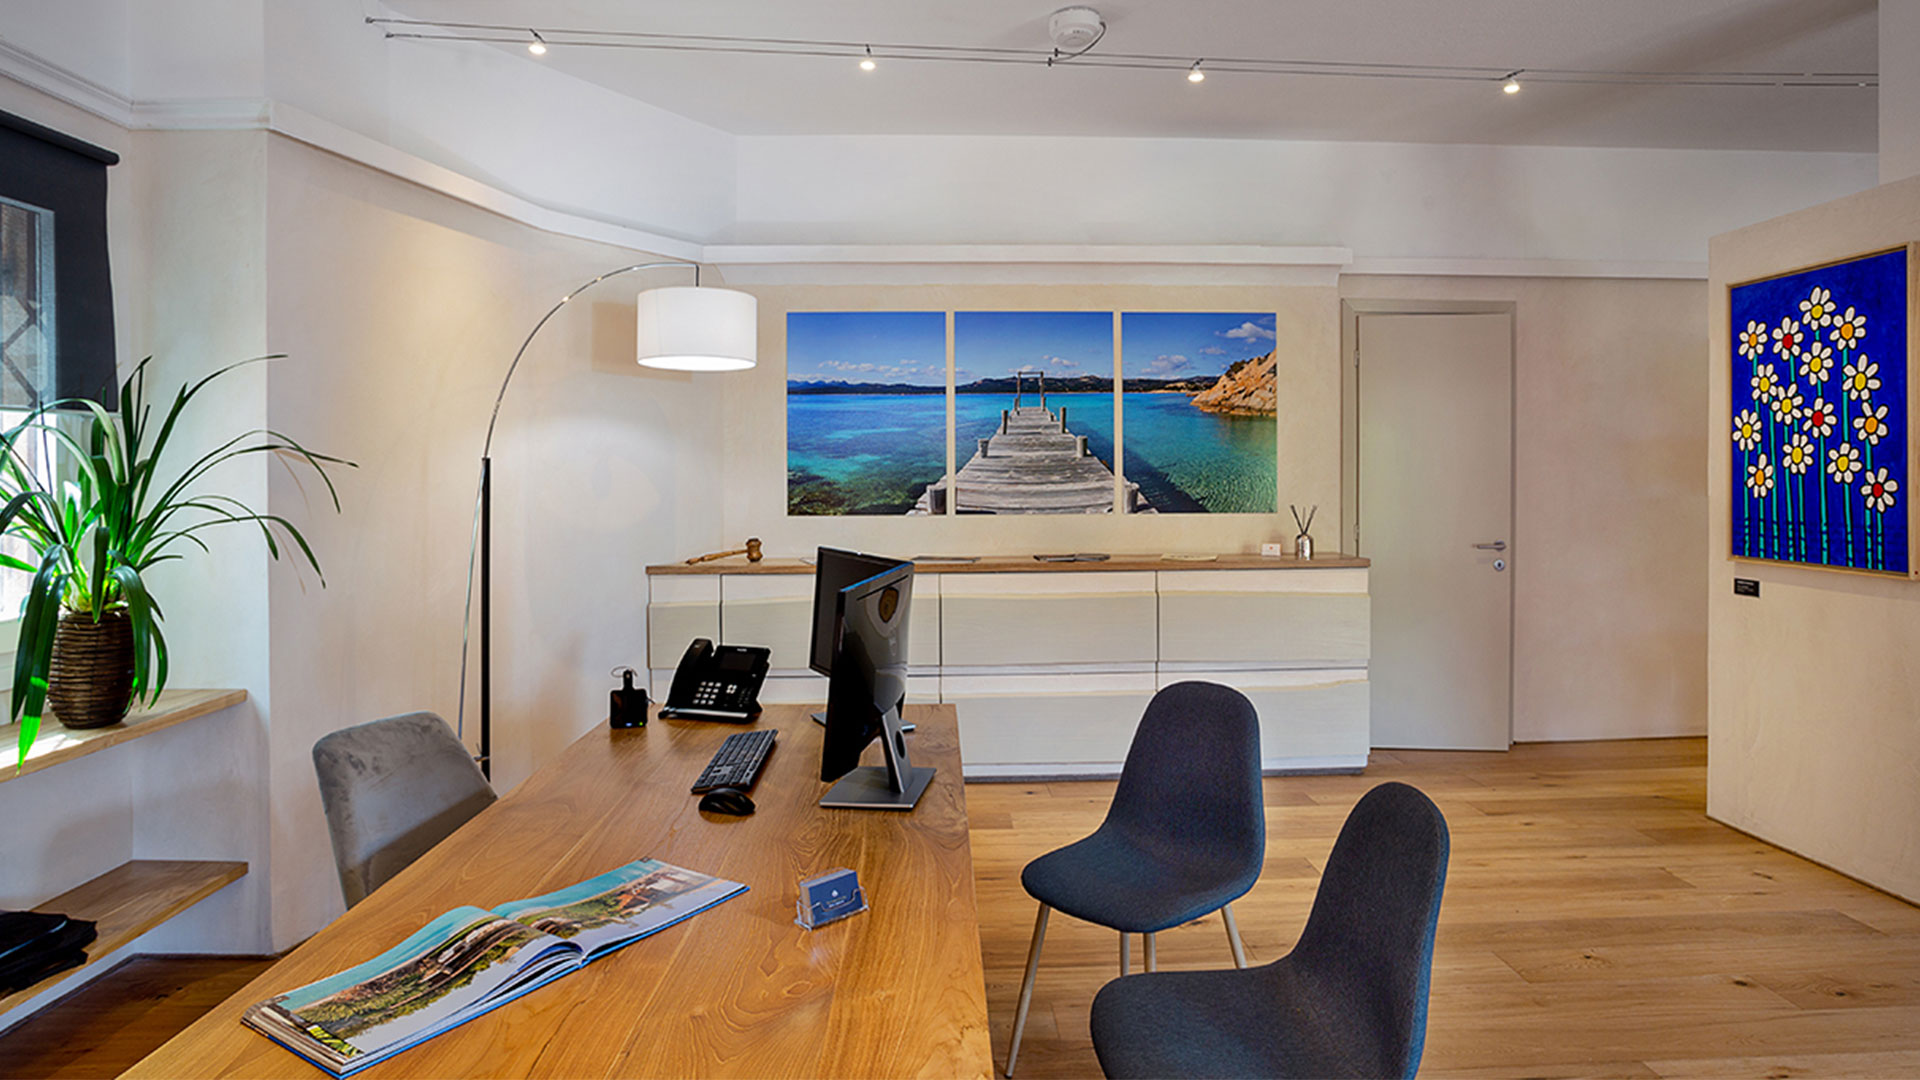 2 Office Vdhre Porto Cervo